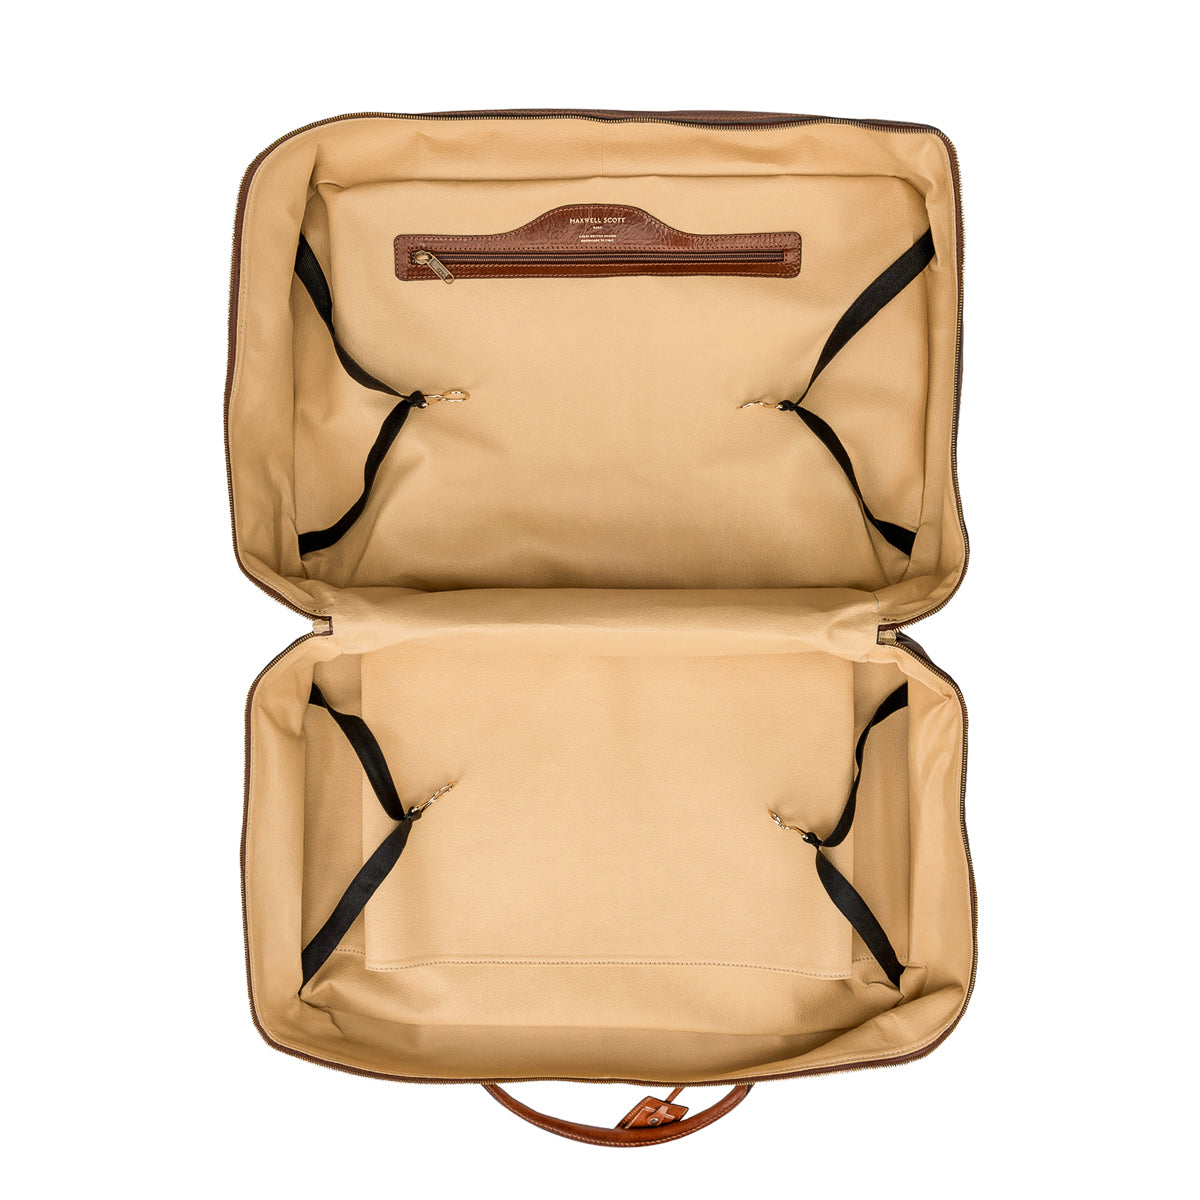 Image 5 of the 'Maurizio' Chestnut Italian Veg-Tanned Leather Suitcase